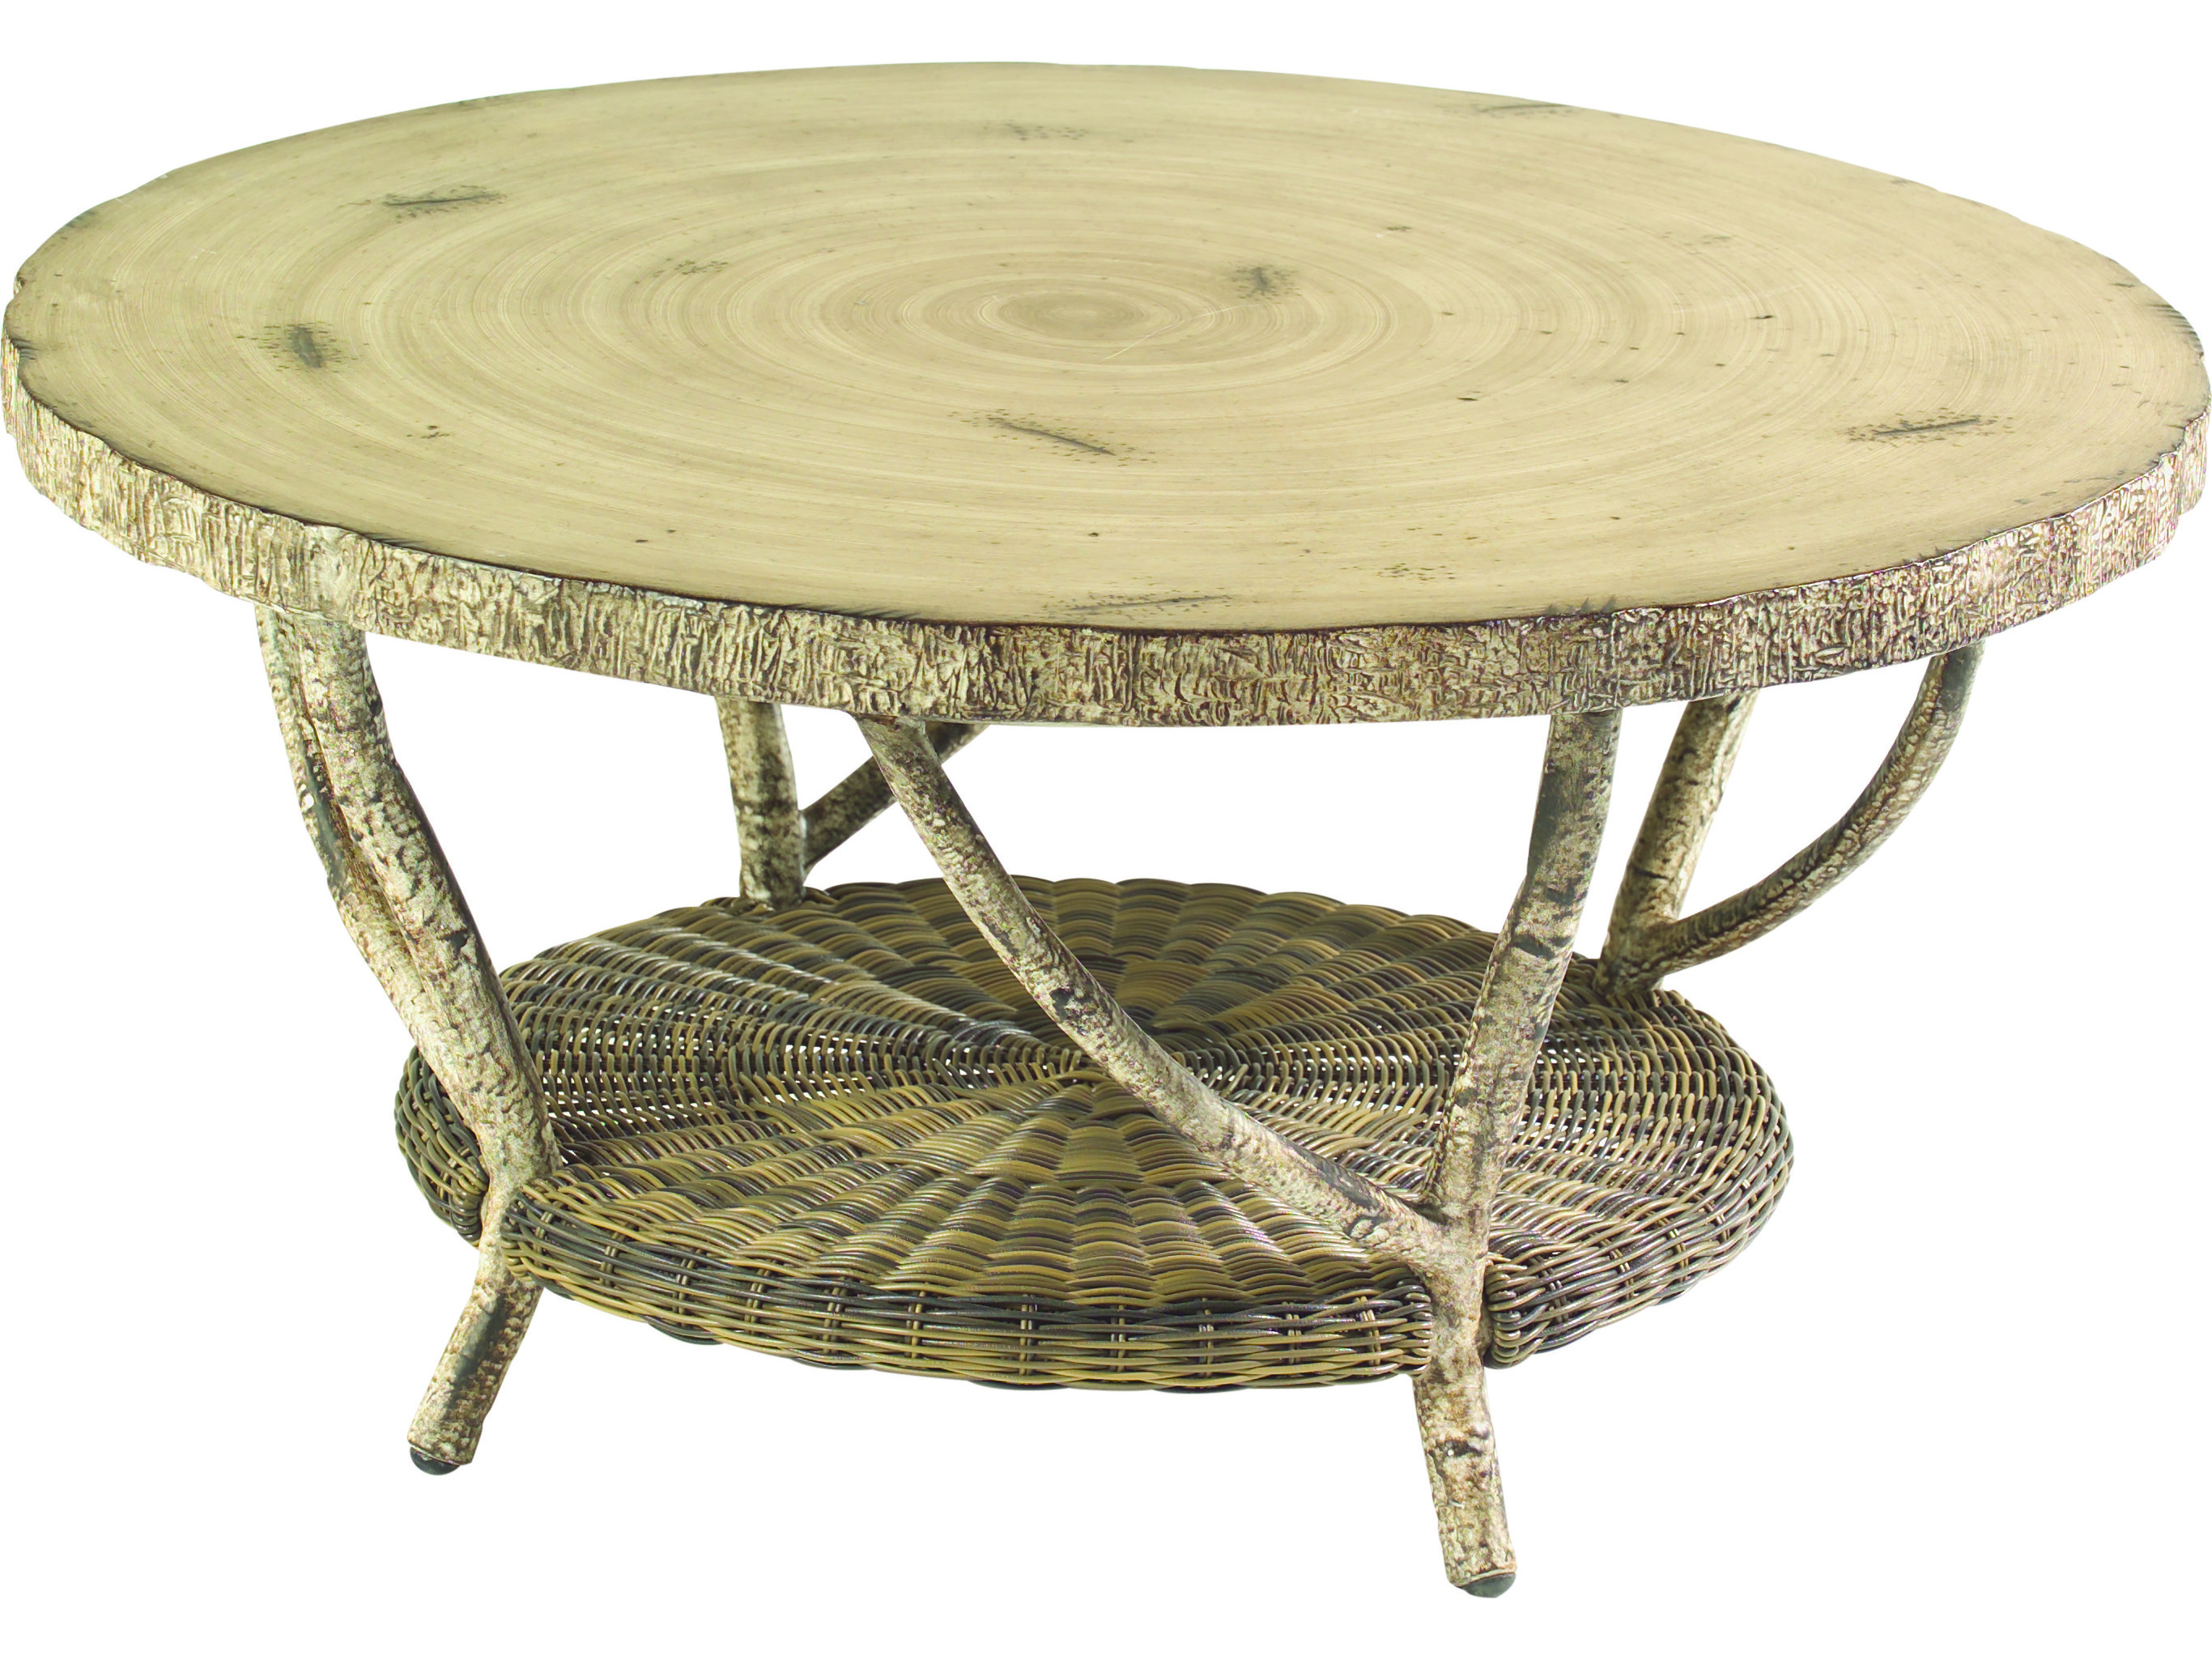 Outdoor round table top 36 - Hover To Zoom